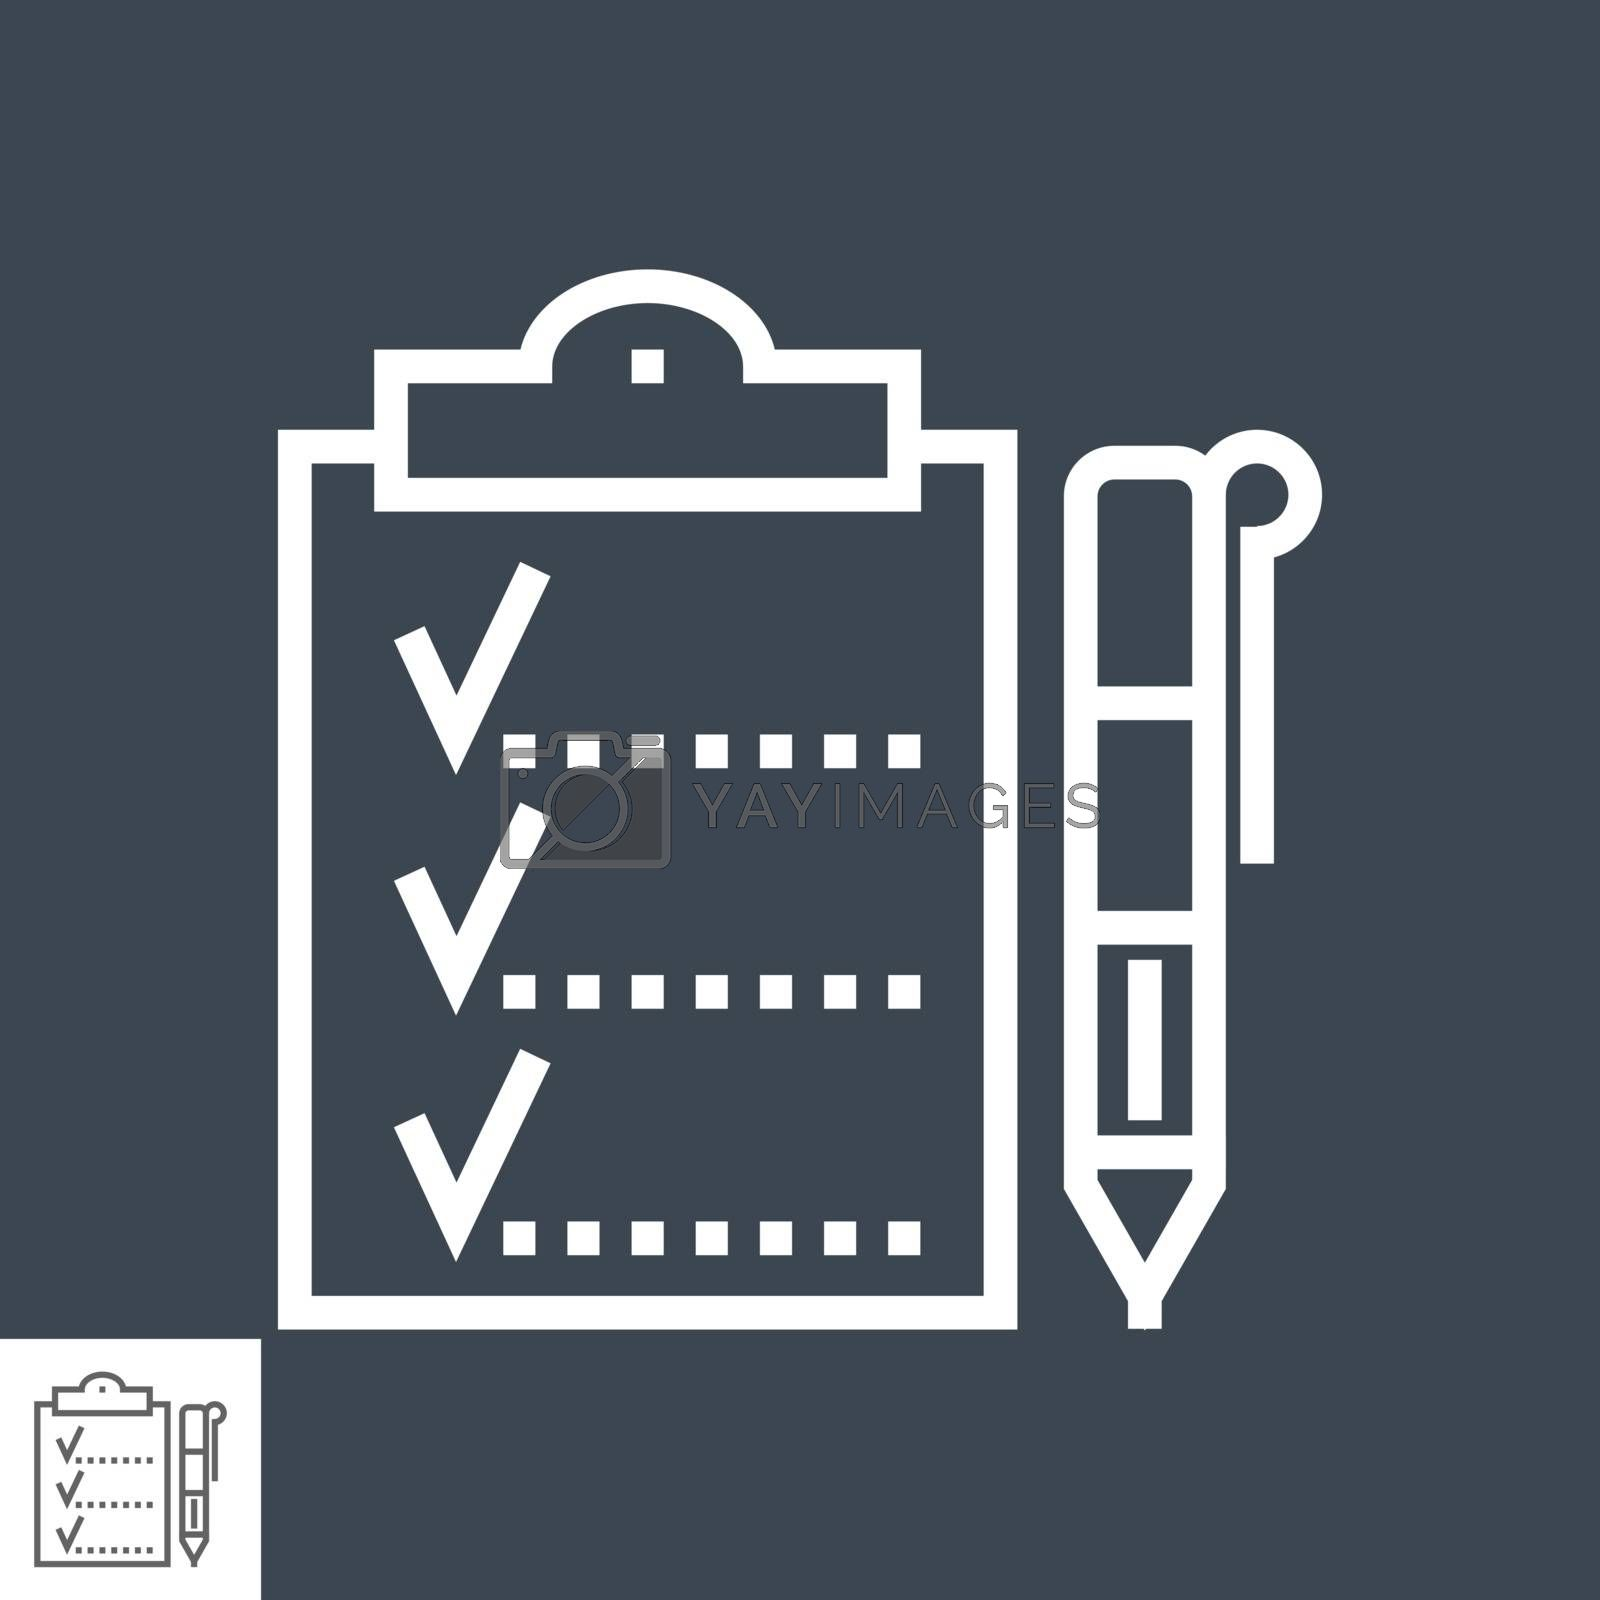 Planing Thin Line Vector Icon Isolated on the Black Background.